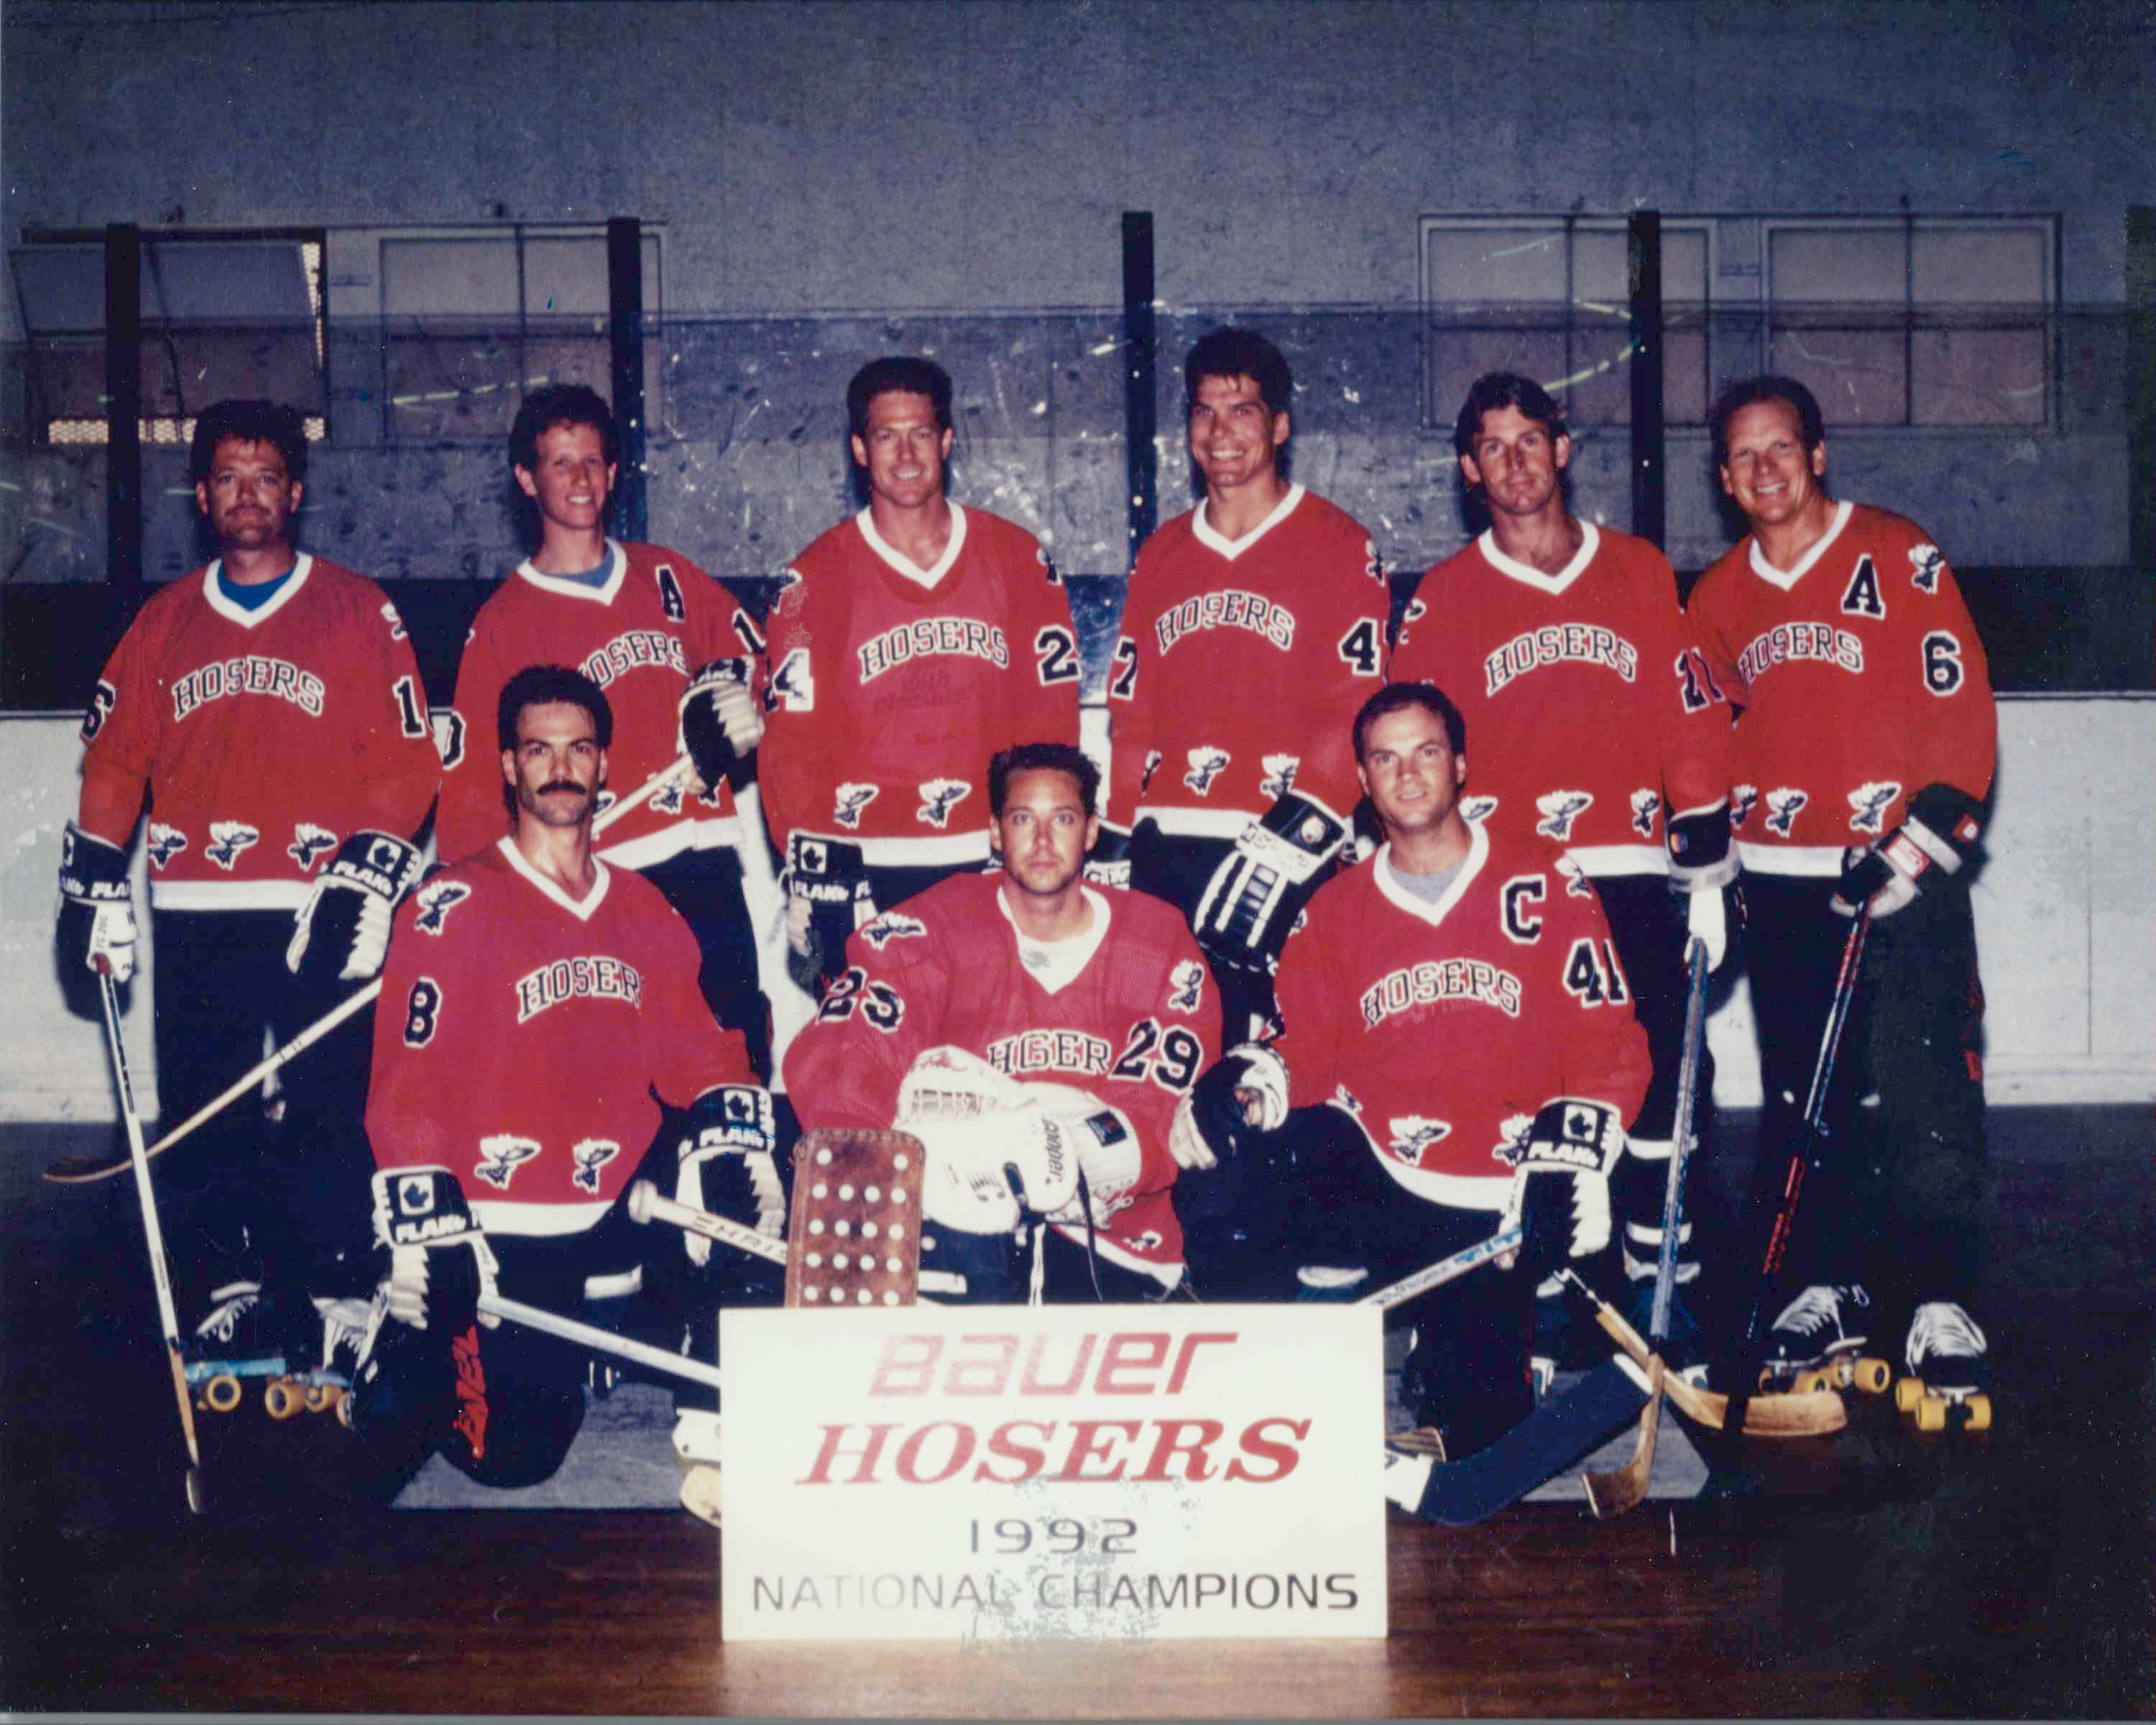 1992_hosers_national_champions-2